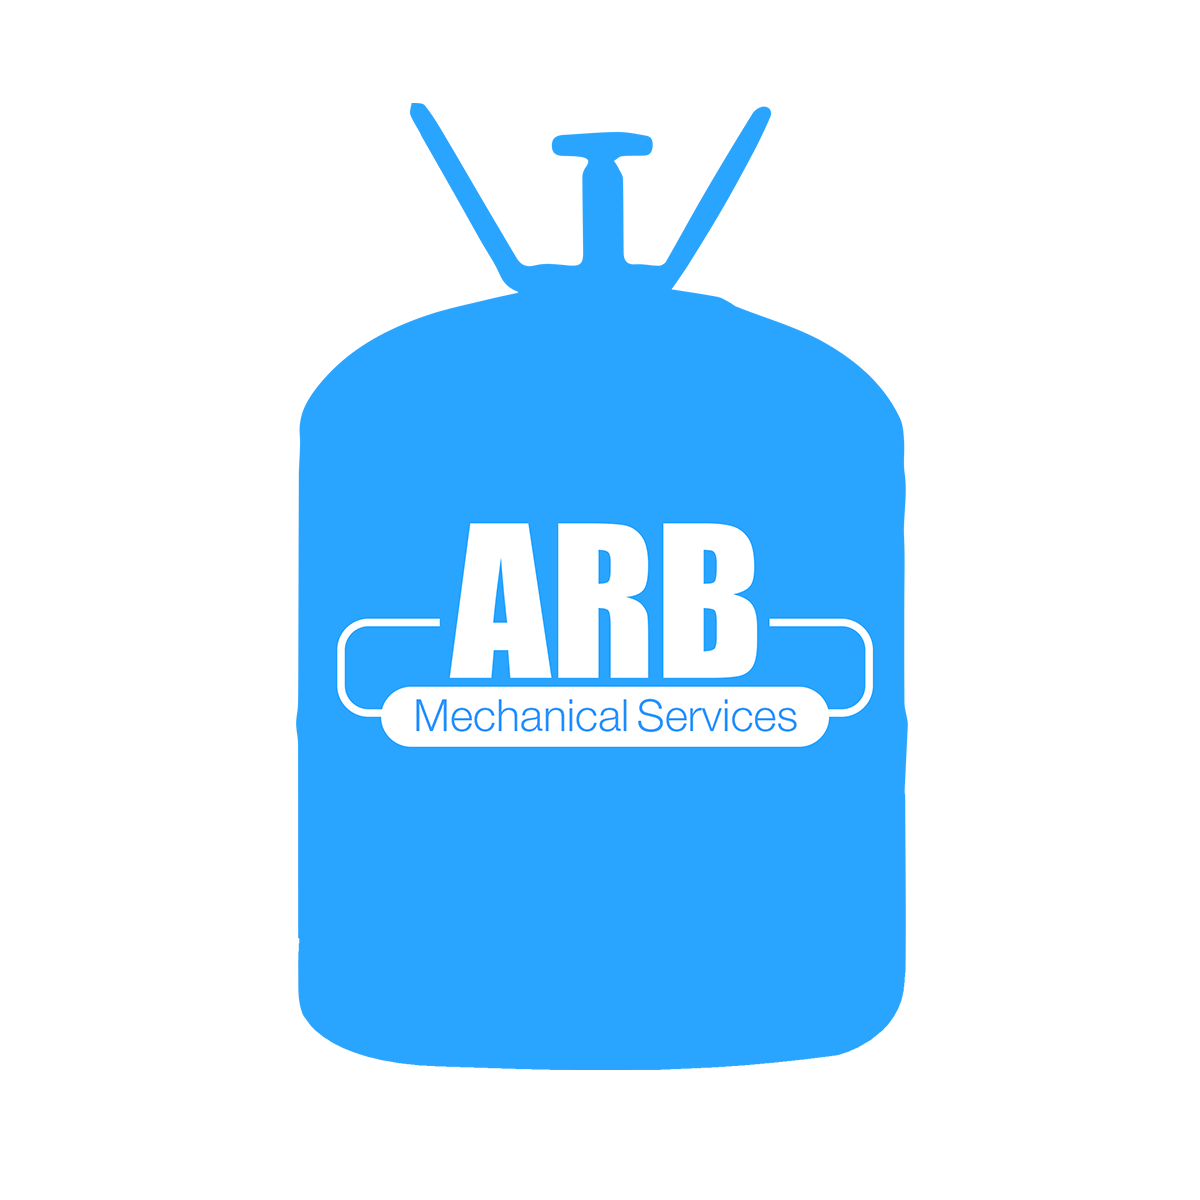 ARB Mechanical Services